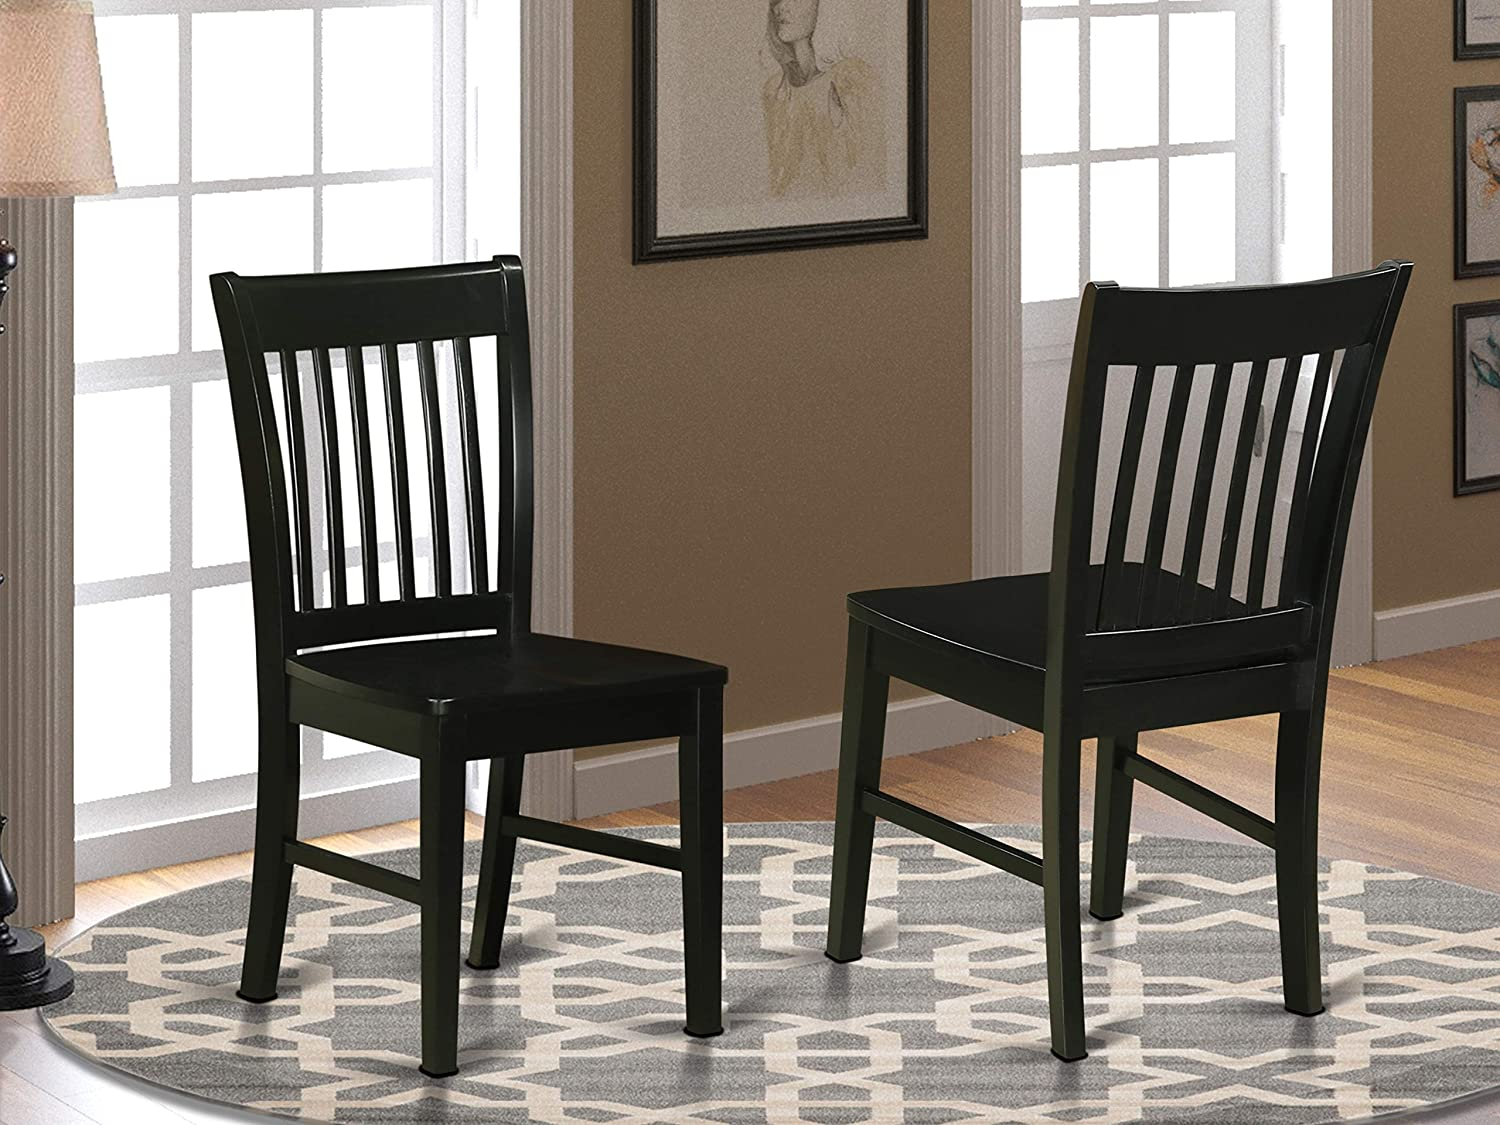 Amazon Com East West Furniture Norfolk Kitchen Chairs Wooden Seat And Black Solid Wood Structure Wooden Dining Chair Set Of 2 Furniture Decor